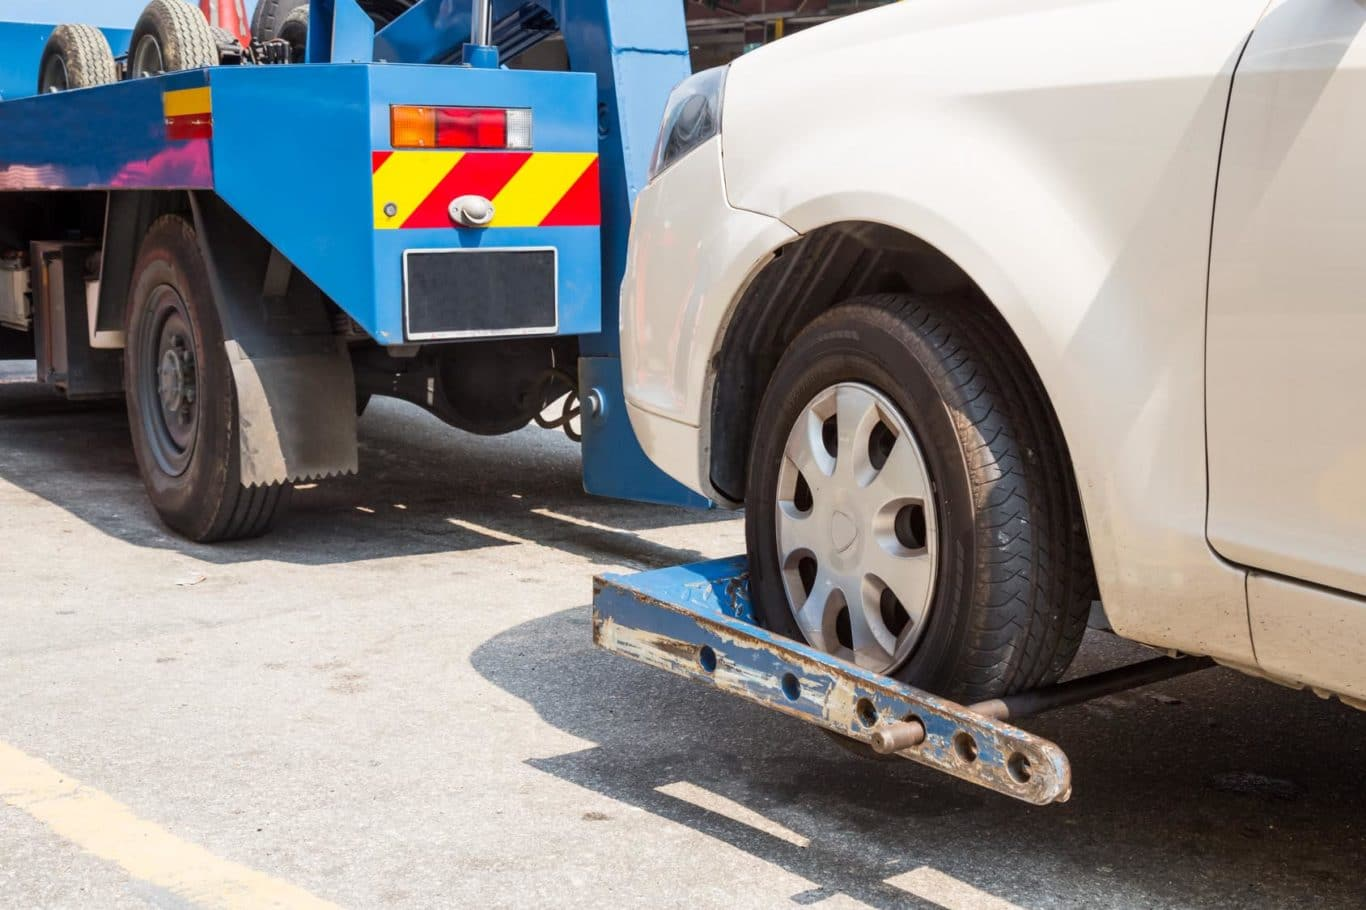 Allenwood expert Car Towing services